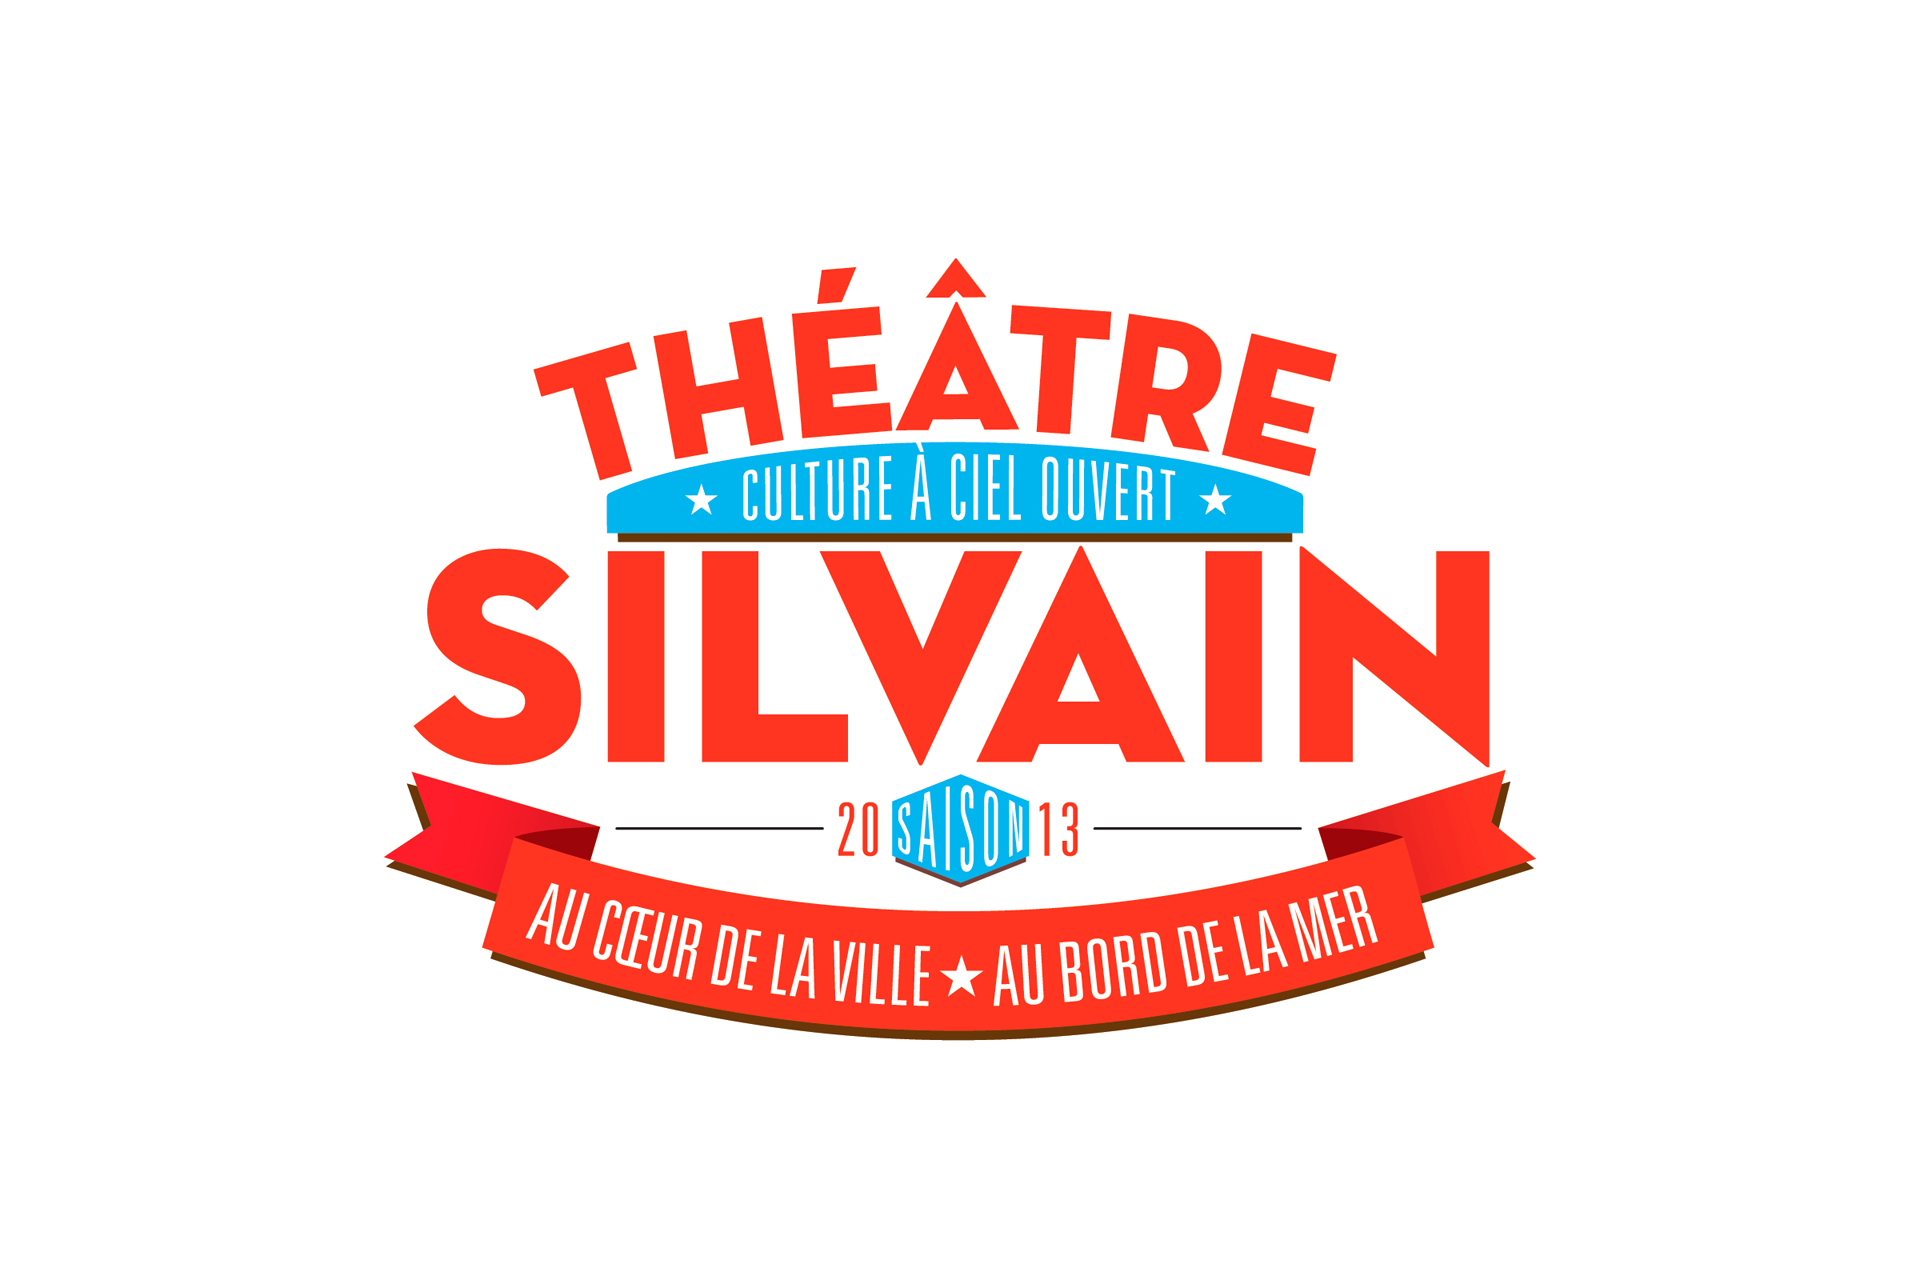 Theatre-silvain-label copie